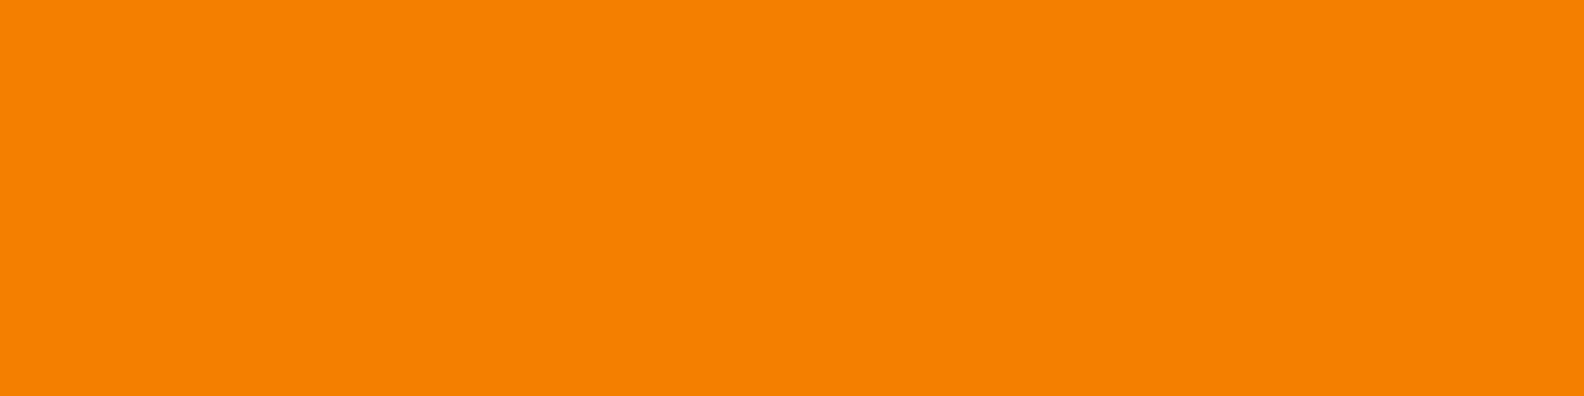 1584x396 University Of Tennessee Orange Solid Color Background